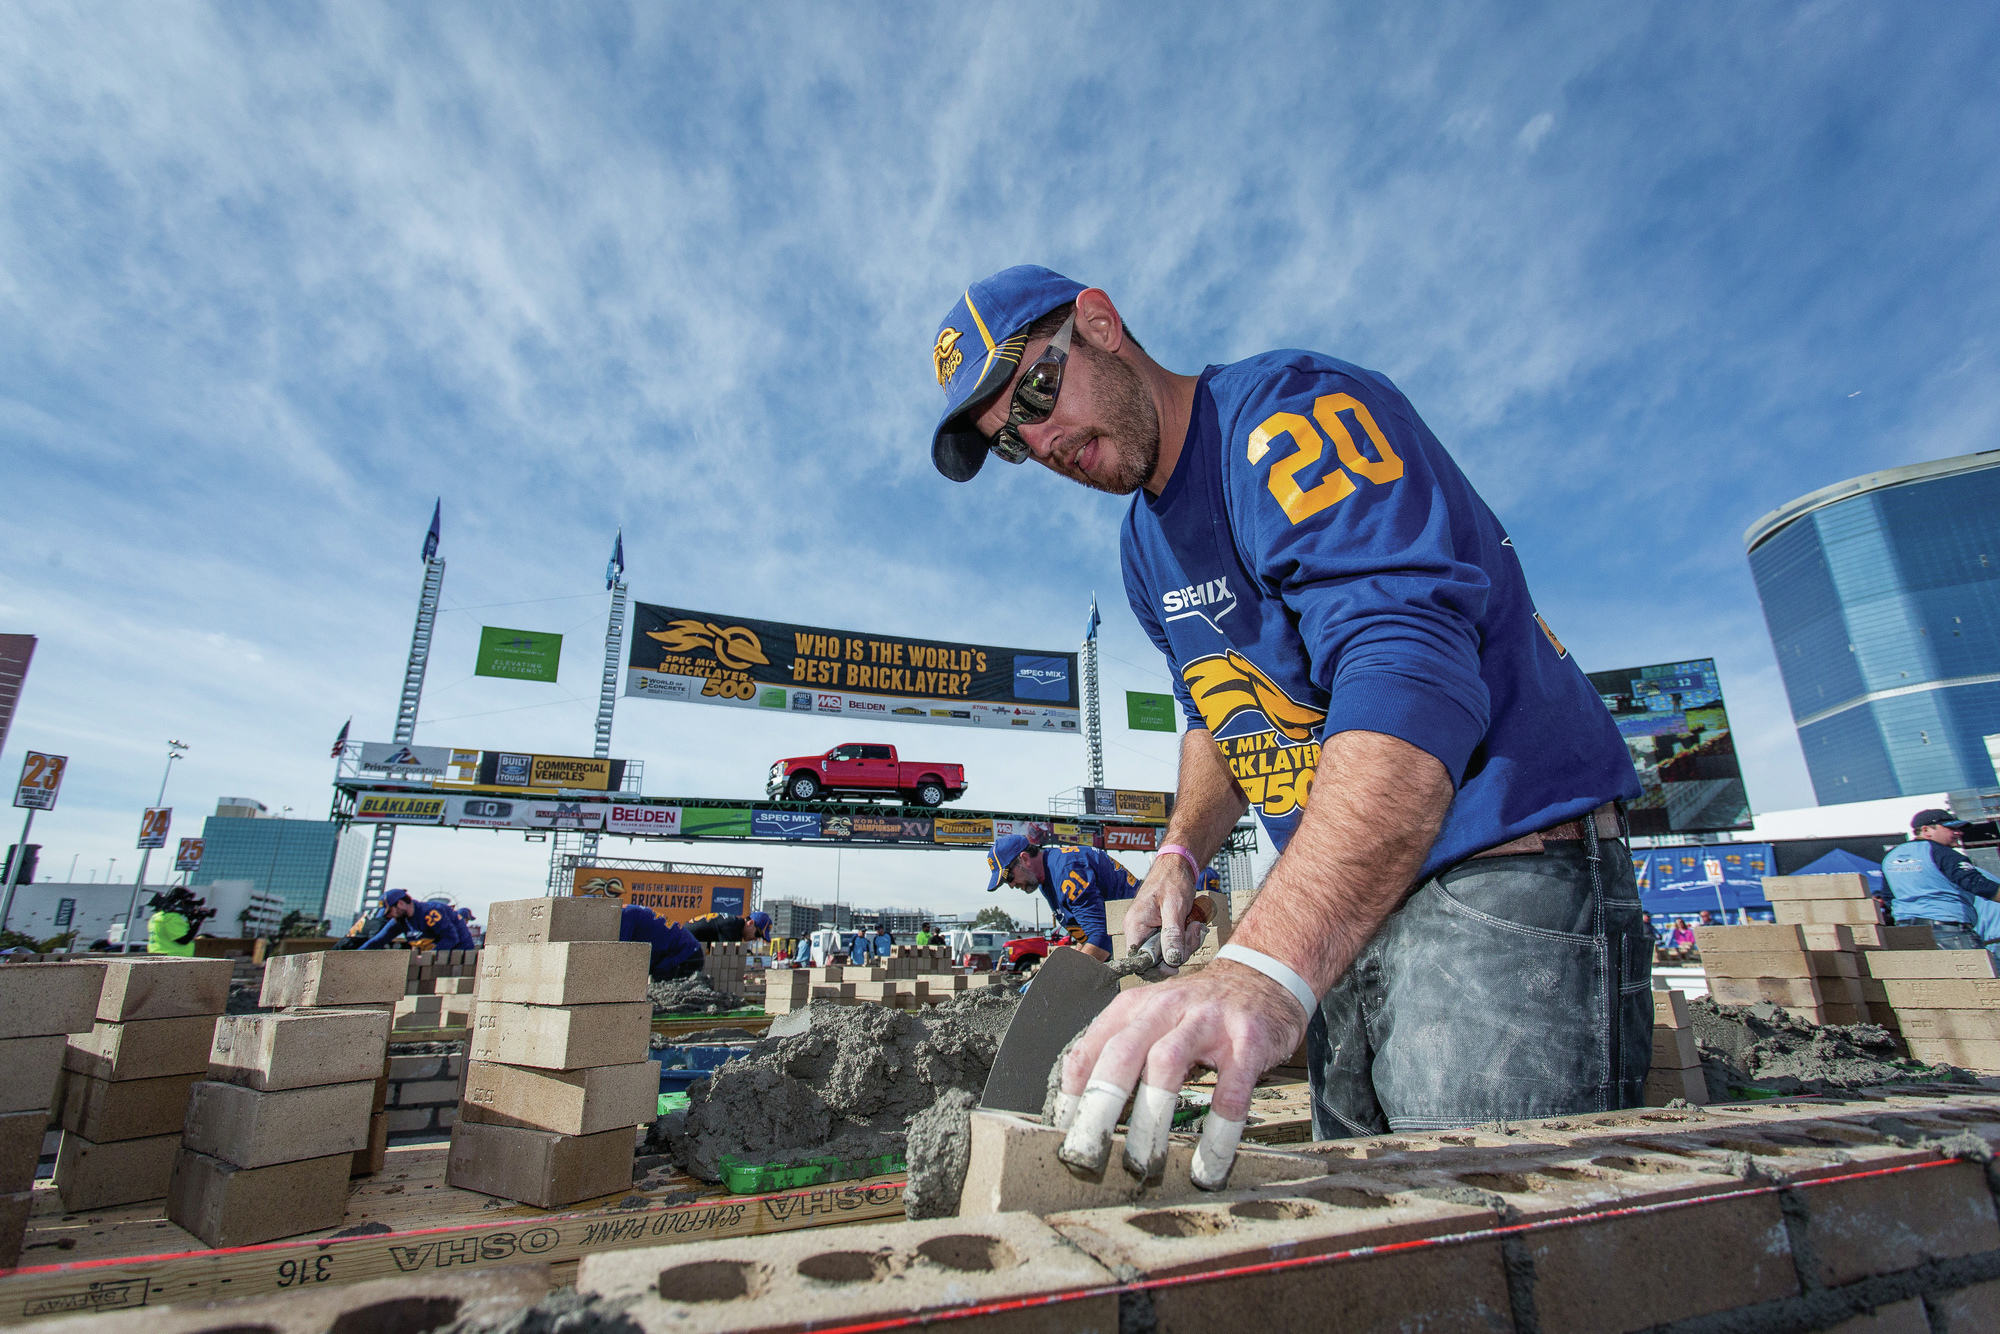 Bricklayer 500 Winners Announced Concrete Construction